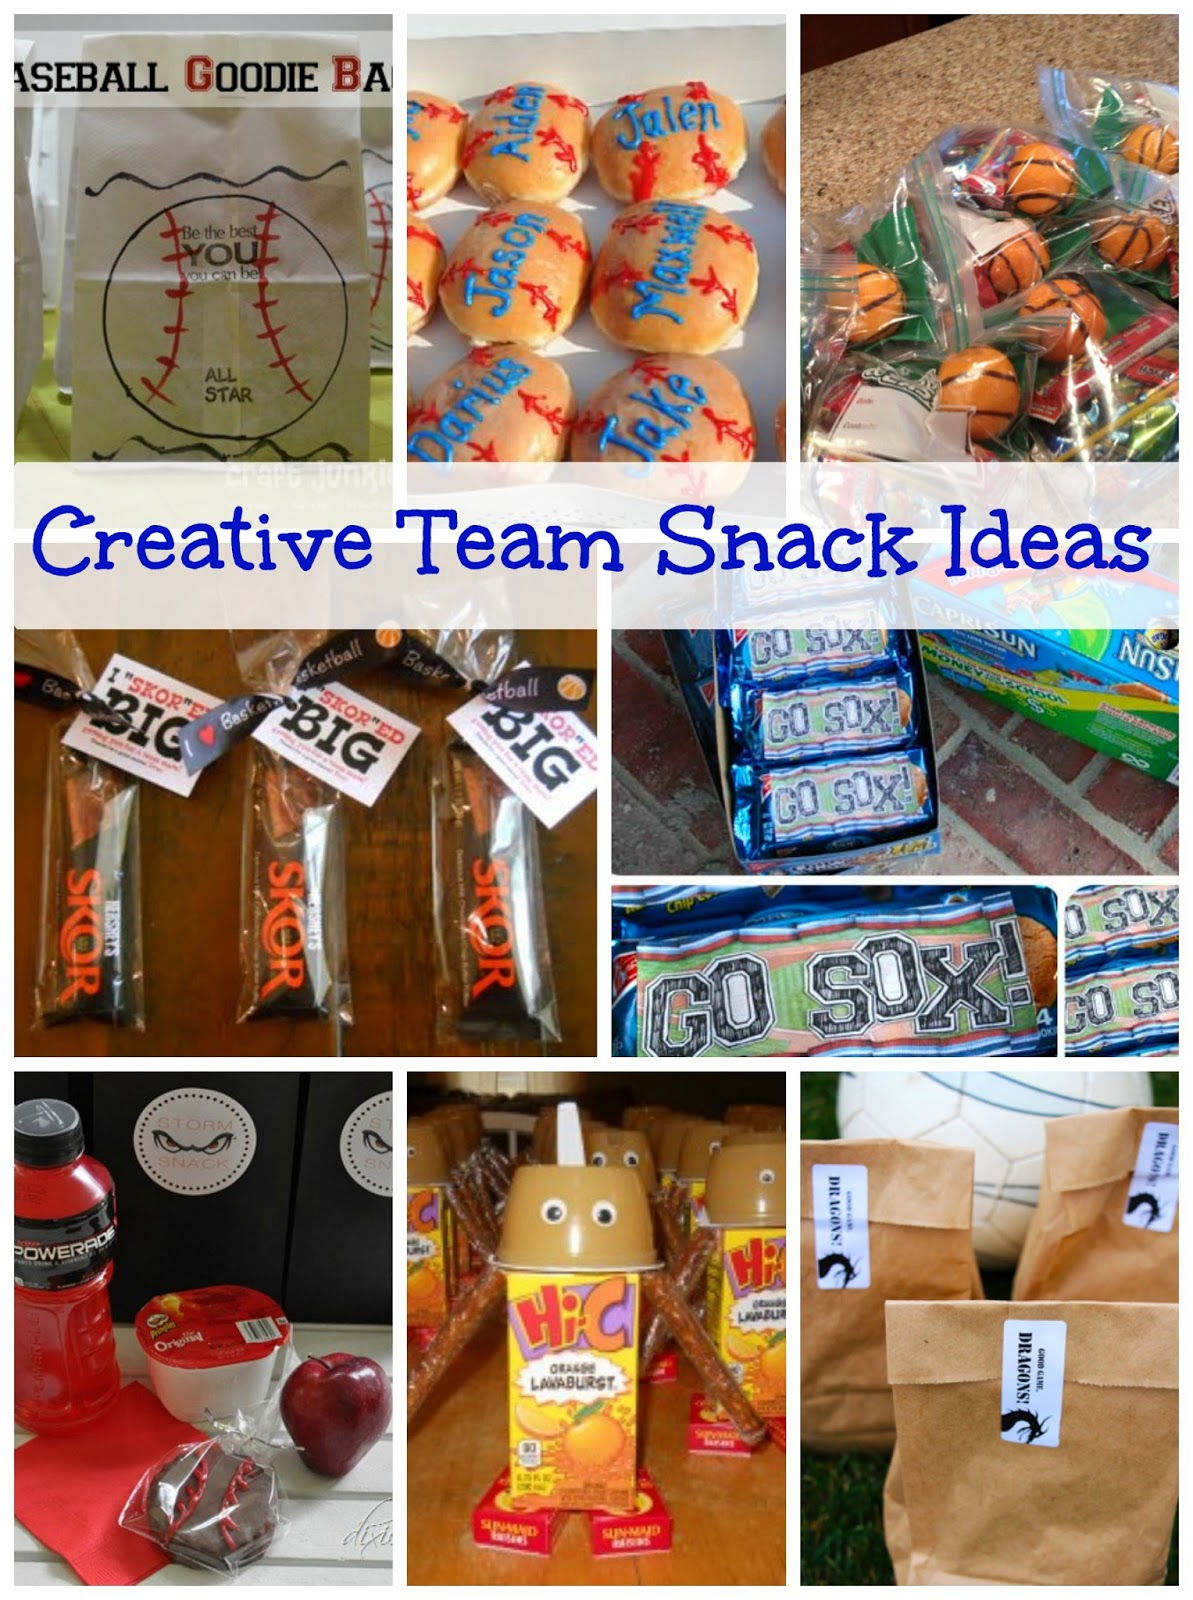 Creative Team Snack Ideas - Happy-Go-Lucky